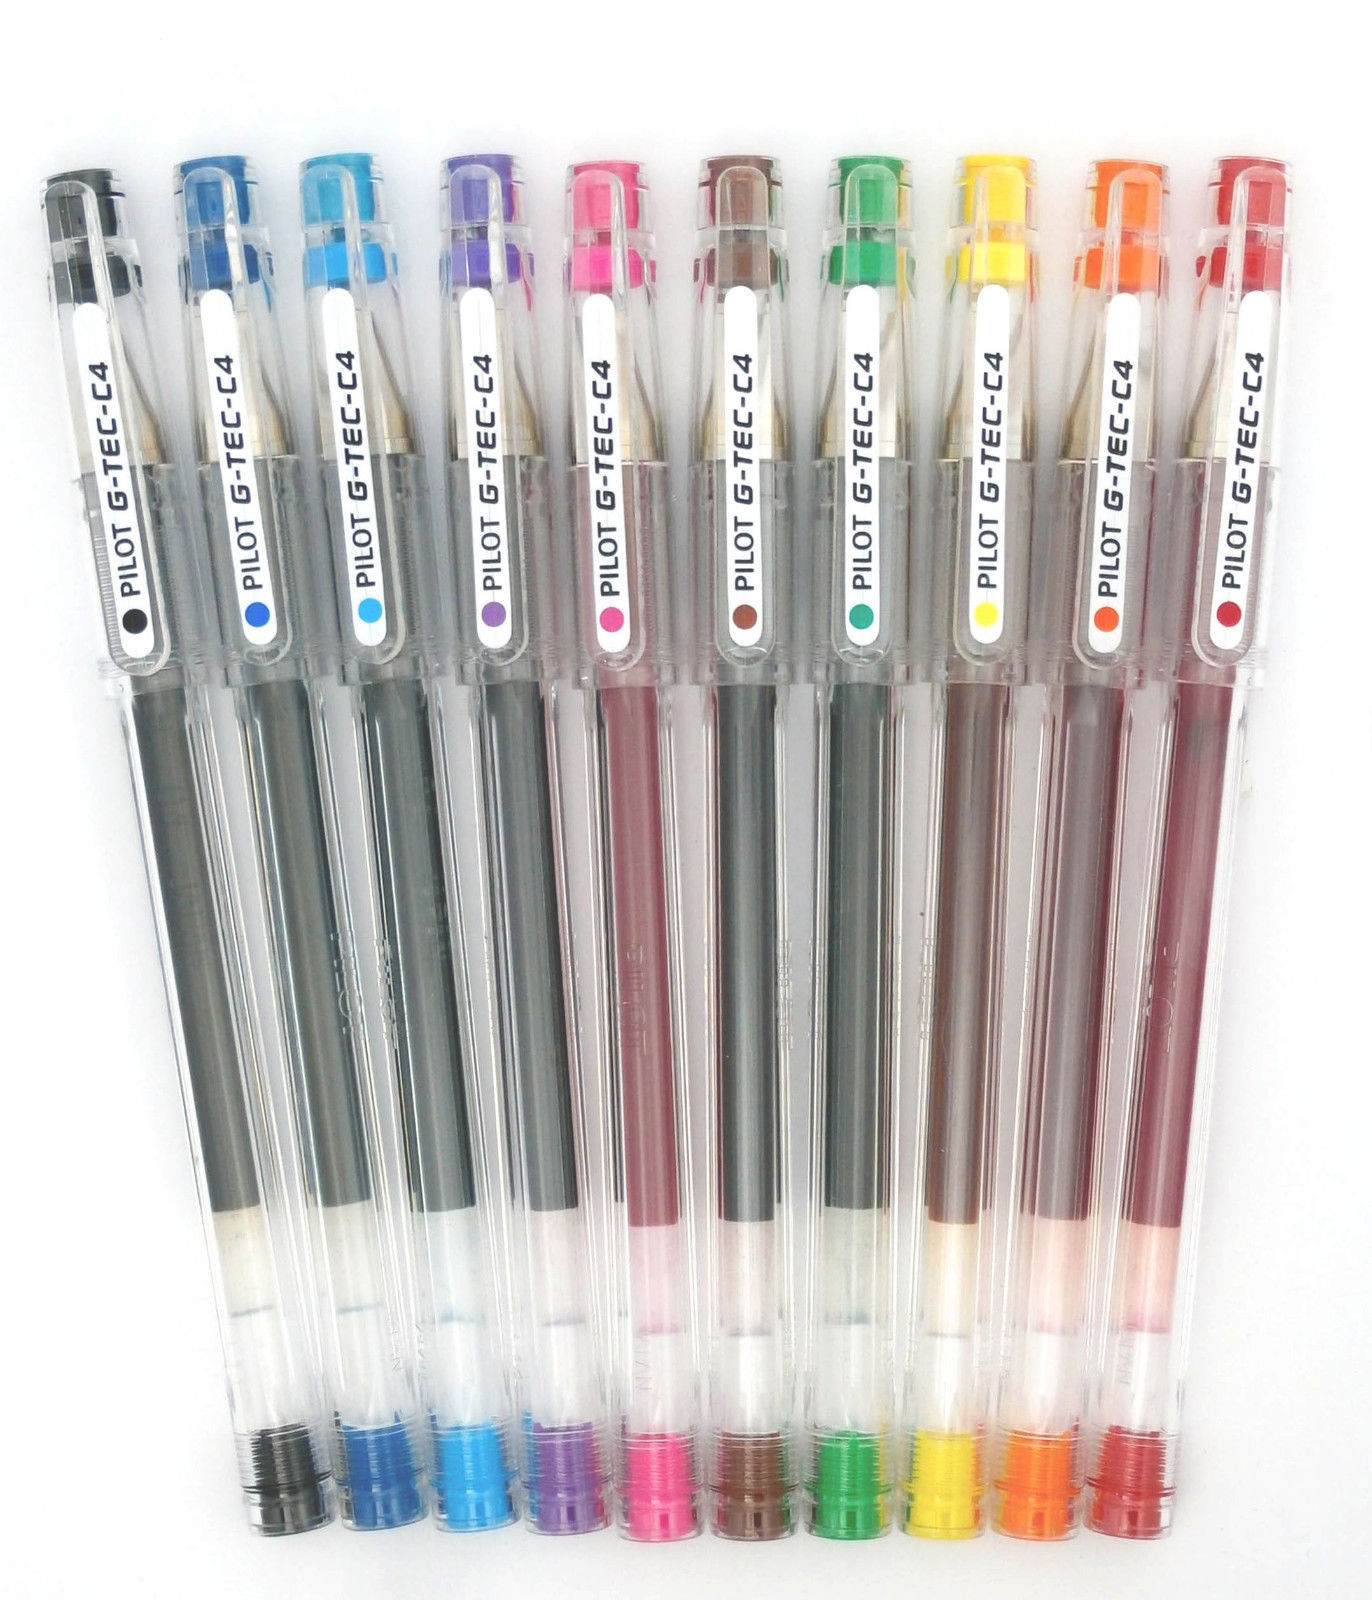 Primary image for Pilot G-Tec C4 Gel Pen 0.4mm Pack of 12 - 10 Colors to choose from!